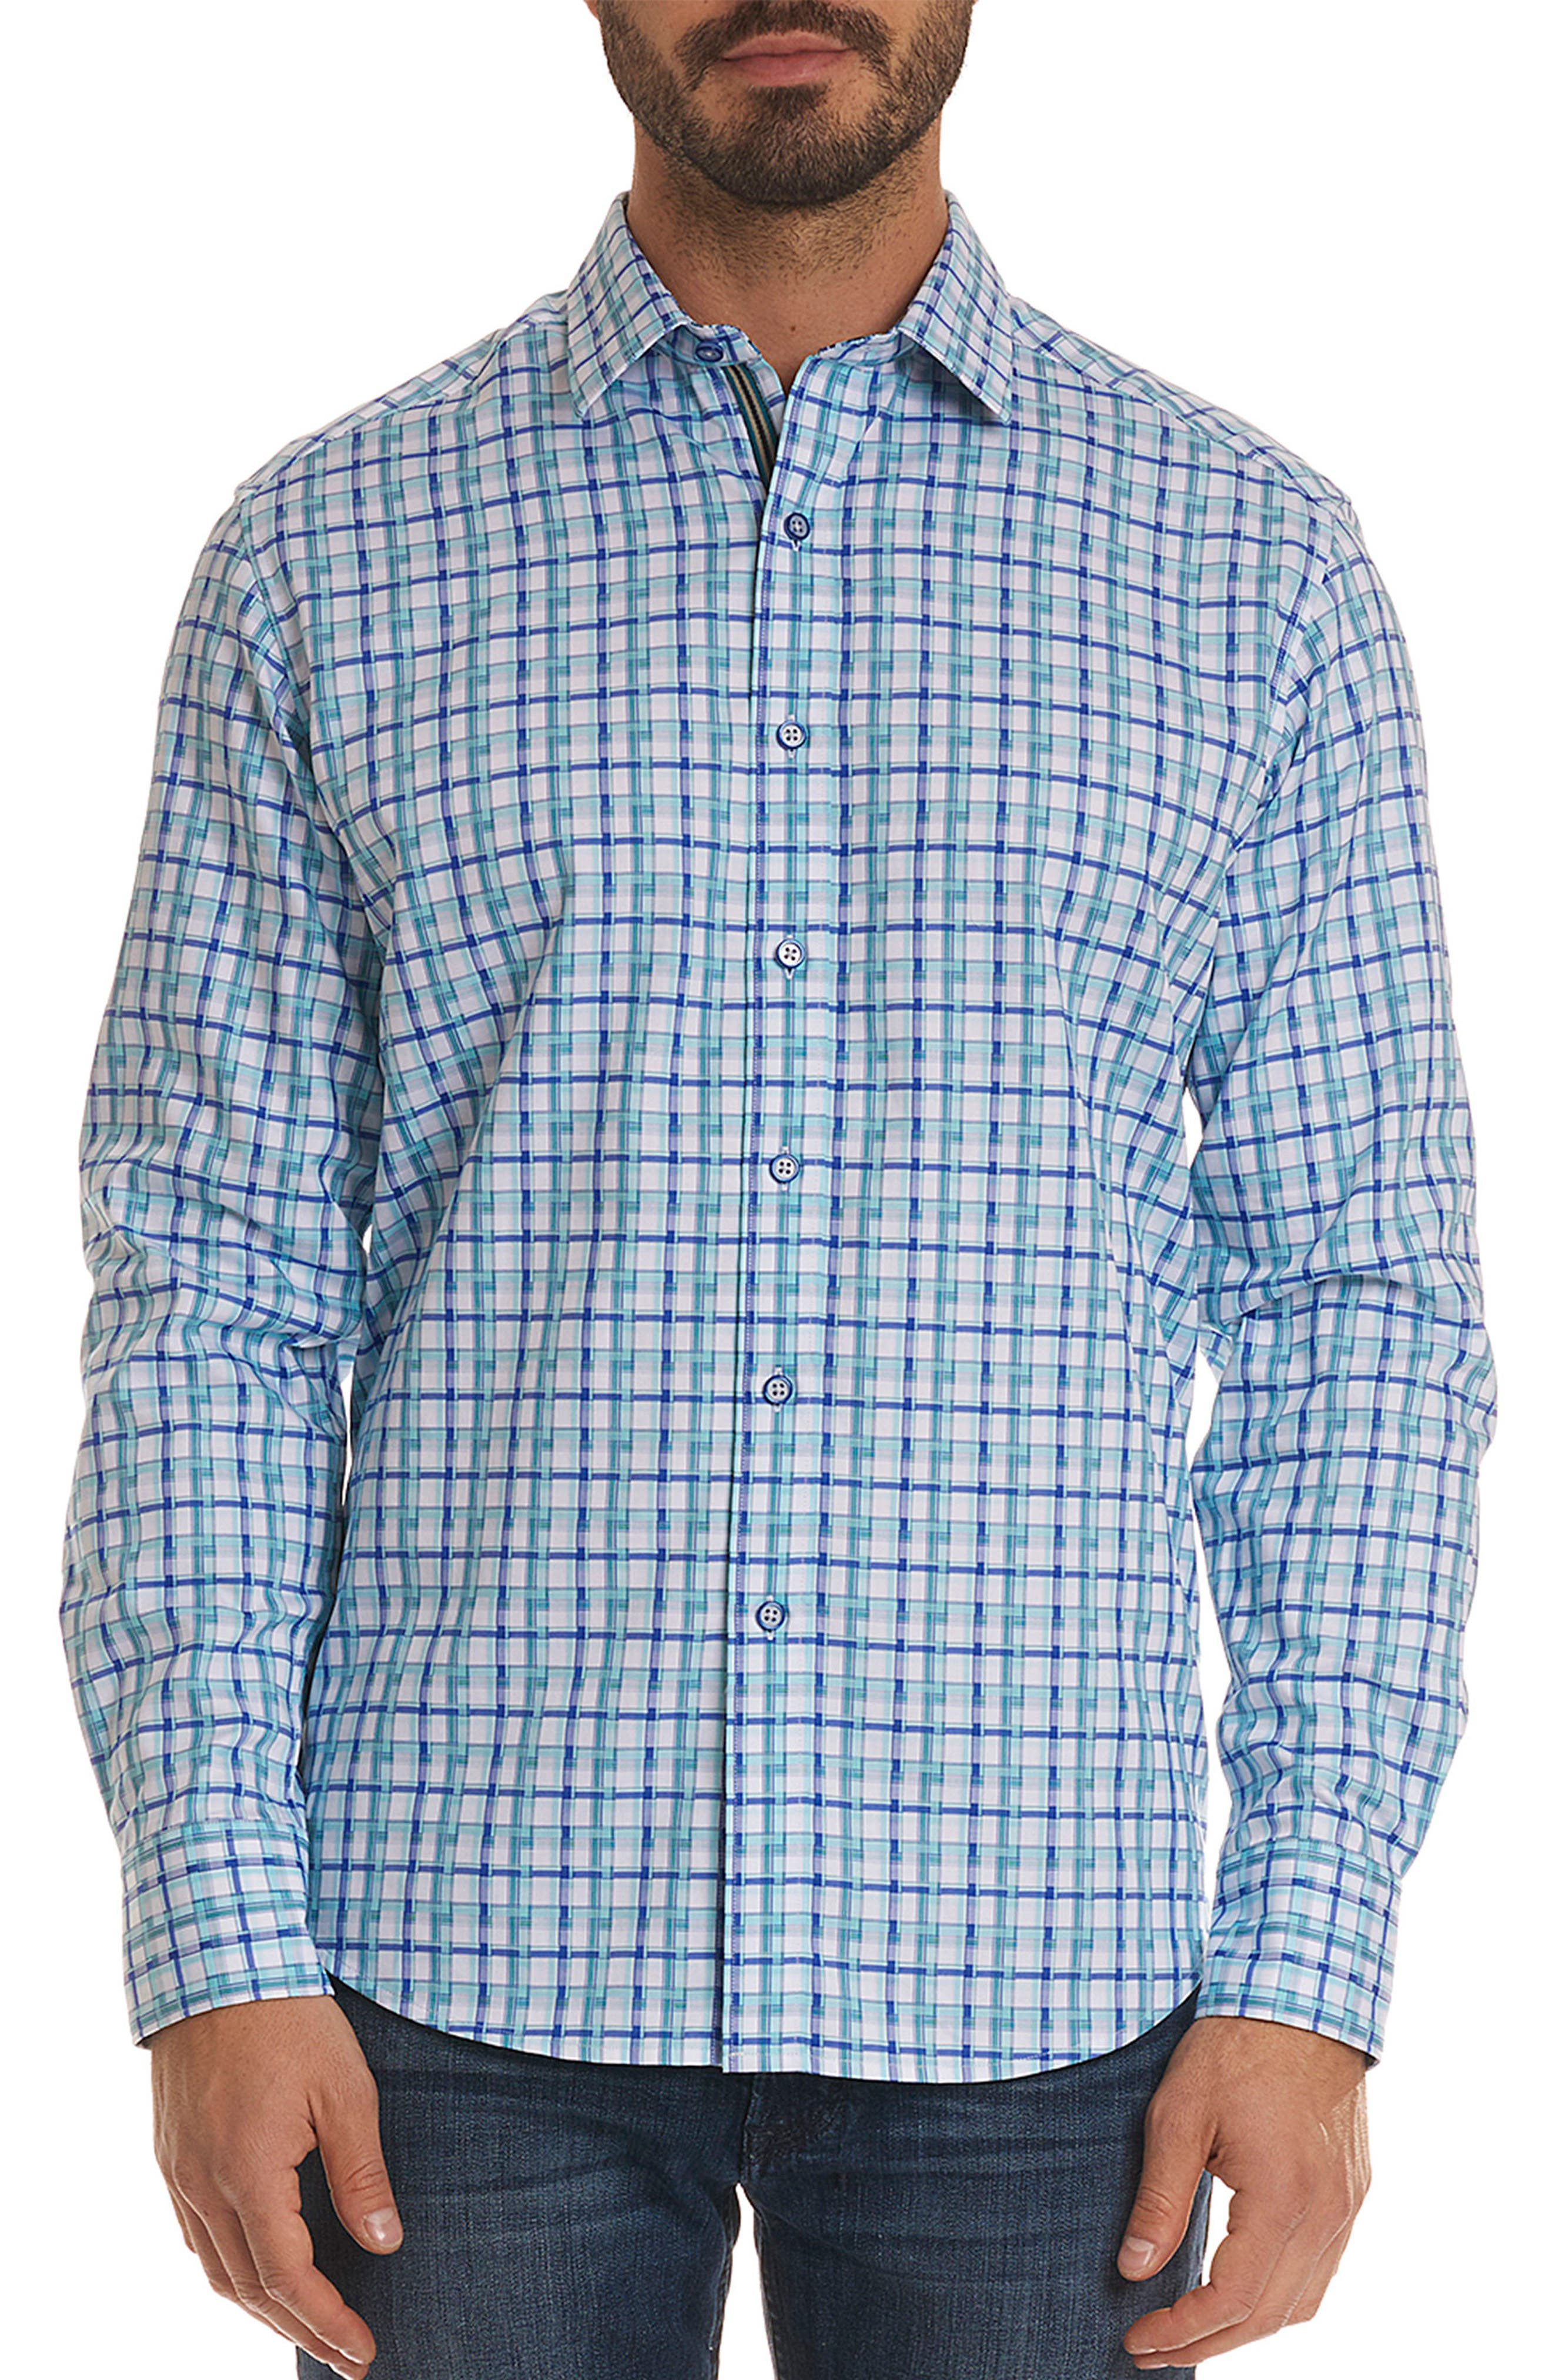 Grouper Classic Fit Geo Sport Shirt,                         Main,                         color, 444